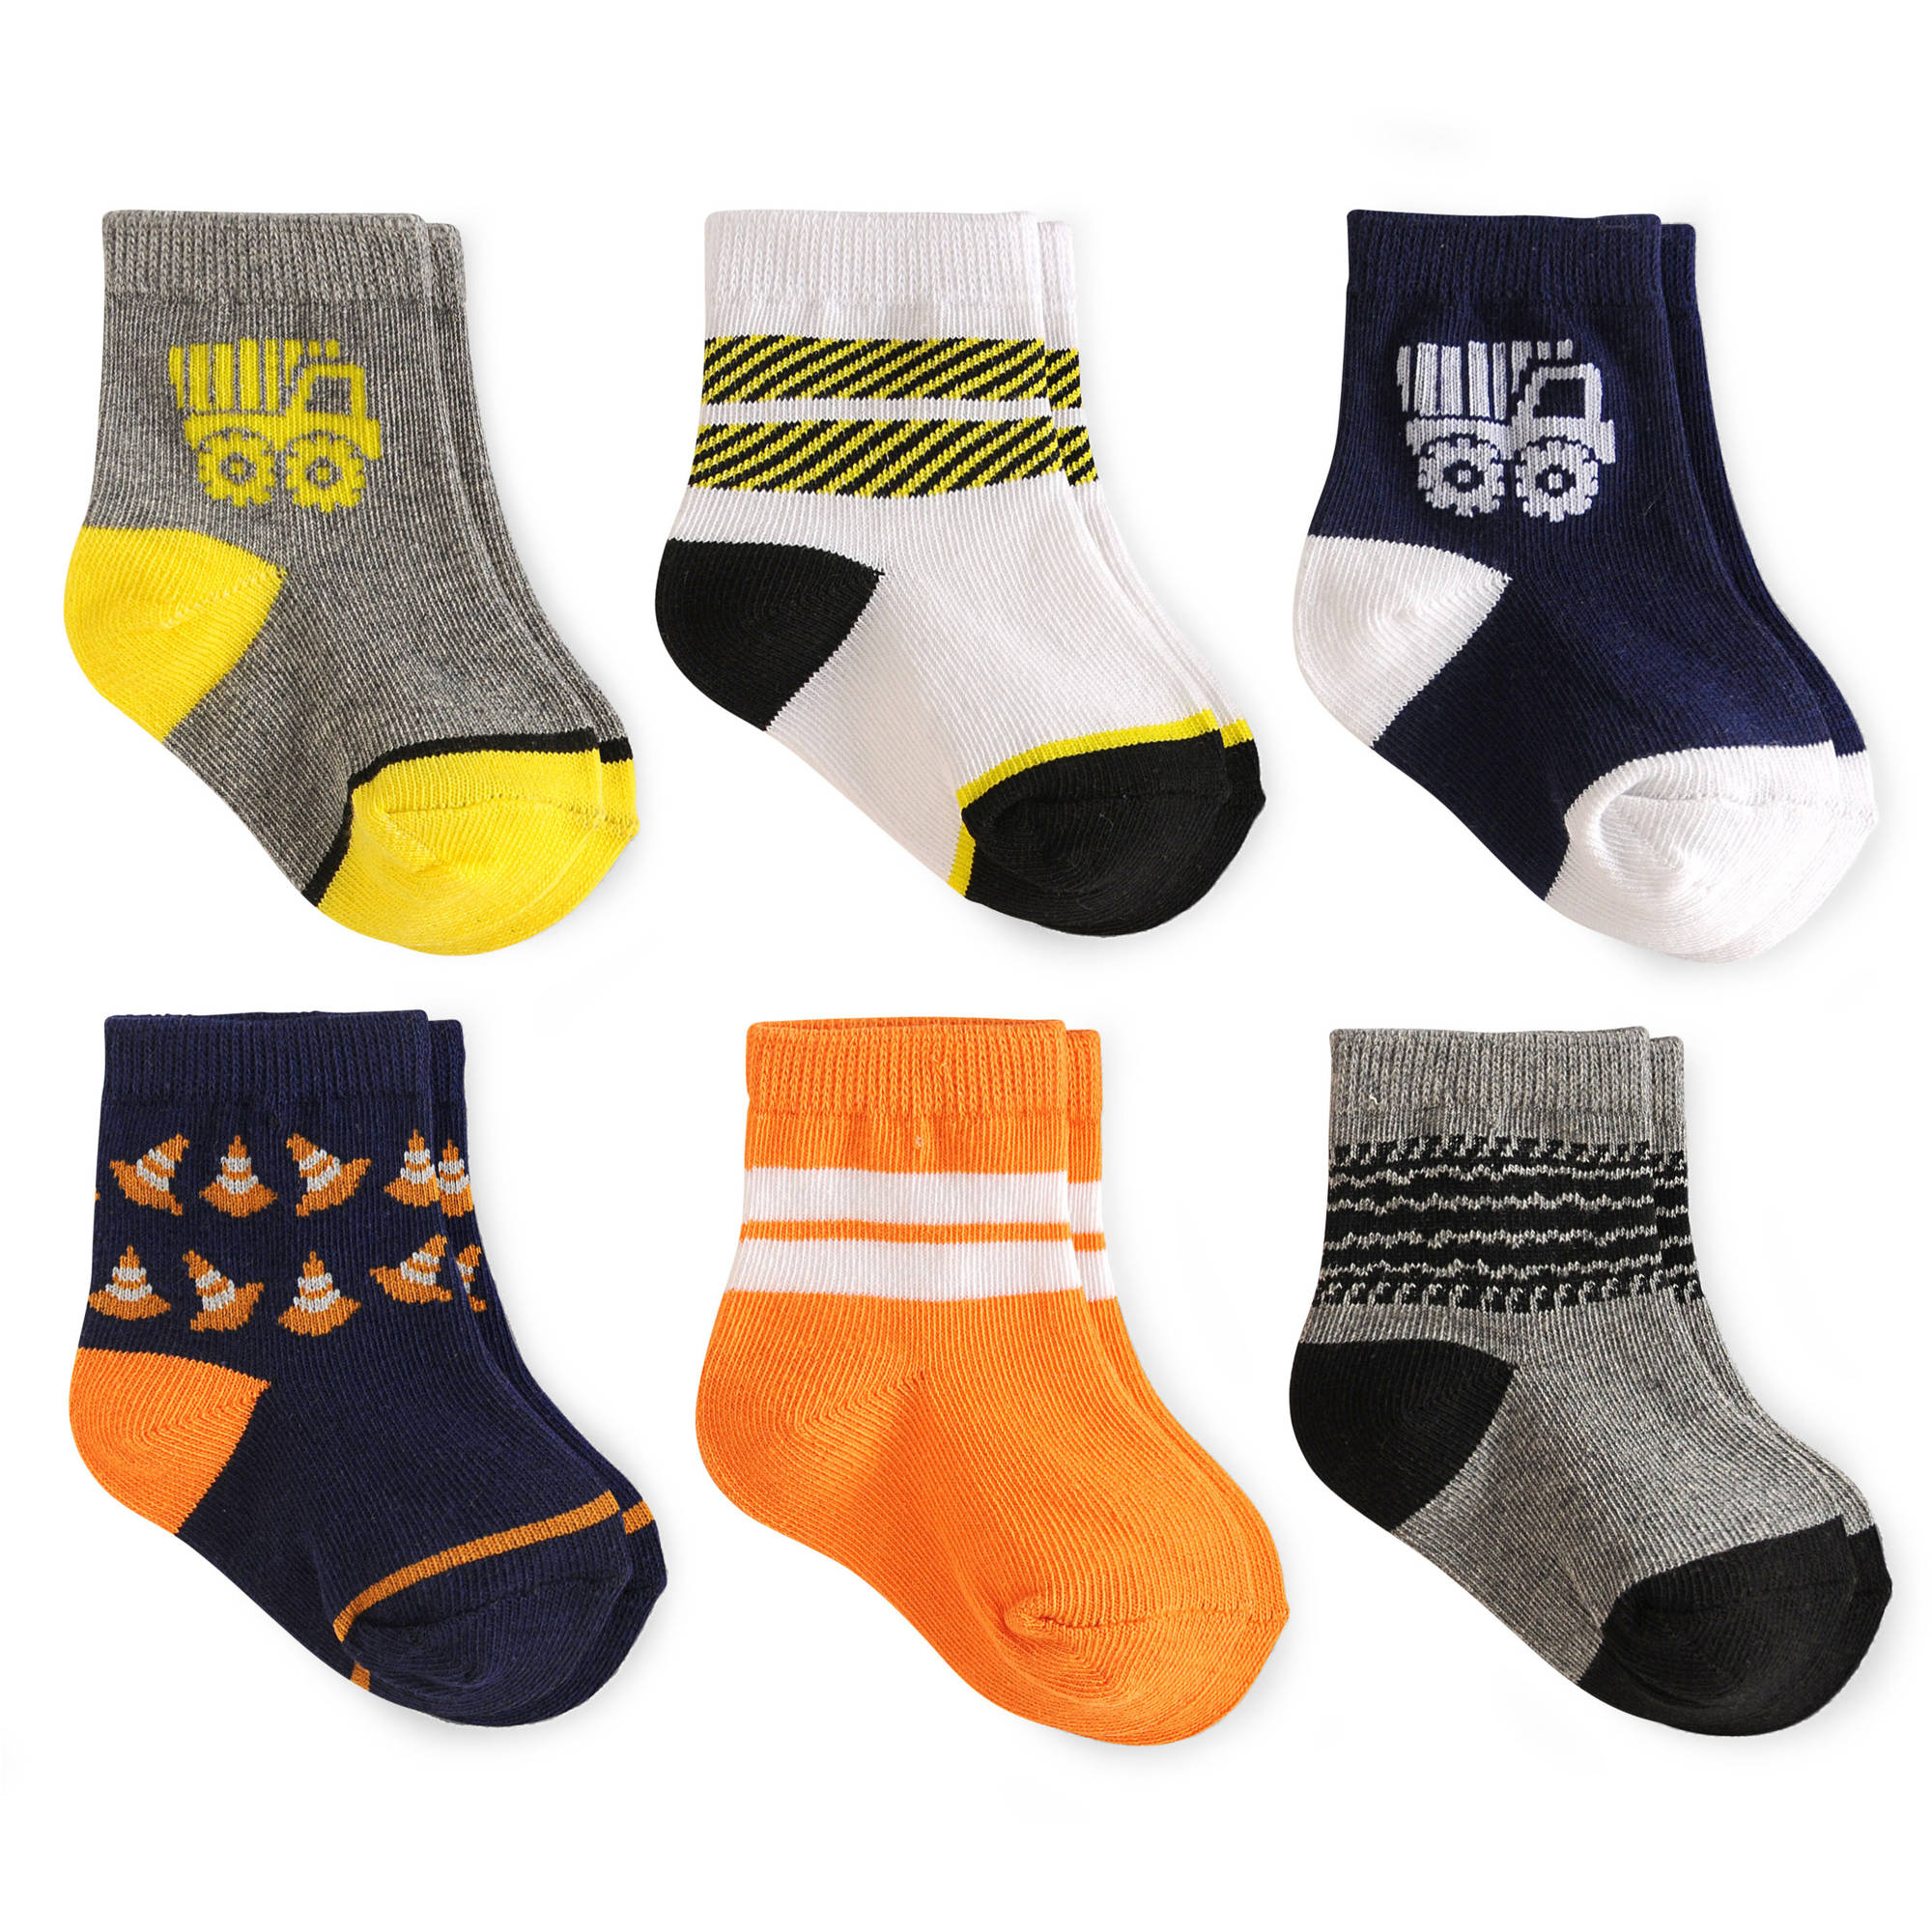 Garanimals Newborn Baby Boy Socks Ages, 6-Pack